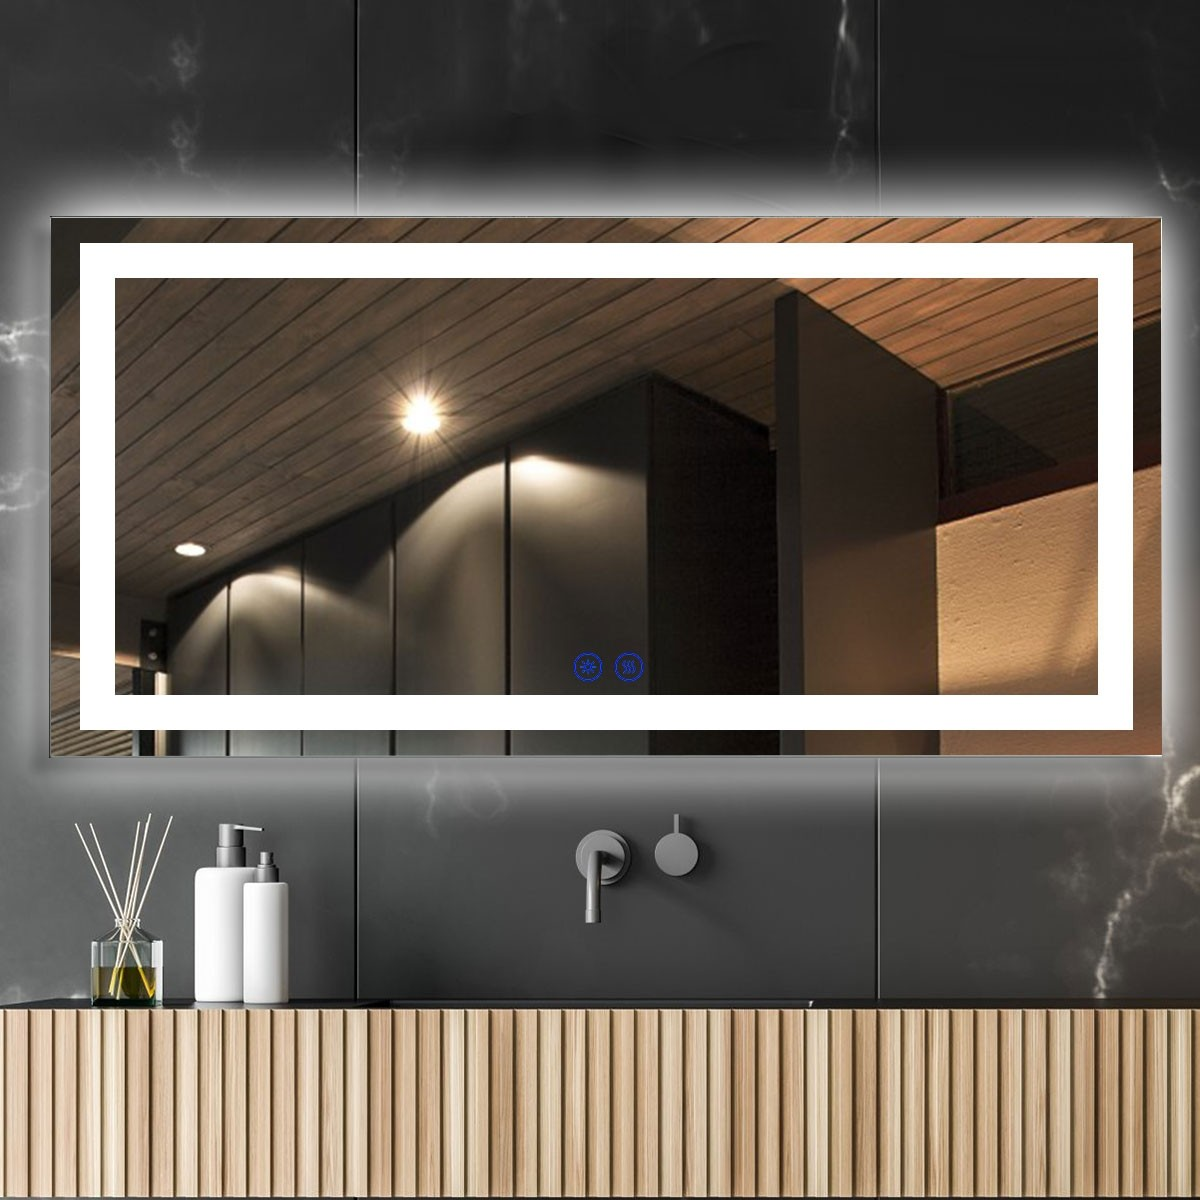 DECORAPORT 84 x 40 Inch LED Bathroom Mirror/Dress Mirror with Touch Button, Anti Fog, Dimmable, Bluetooth Speakers, Vertical & Horizontal Mount (D223-8440A)